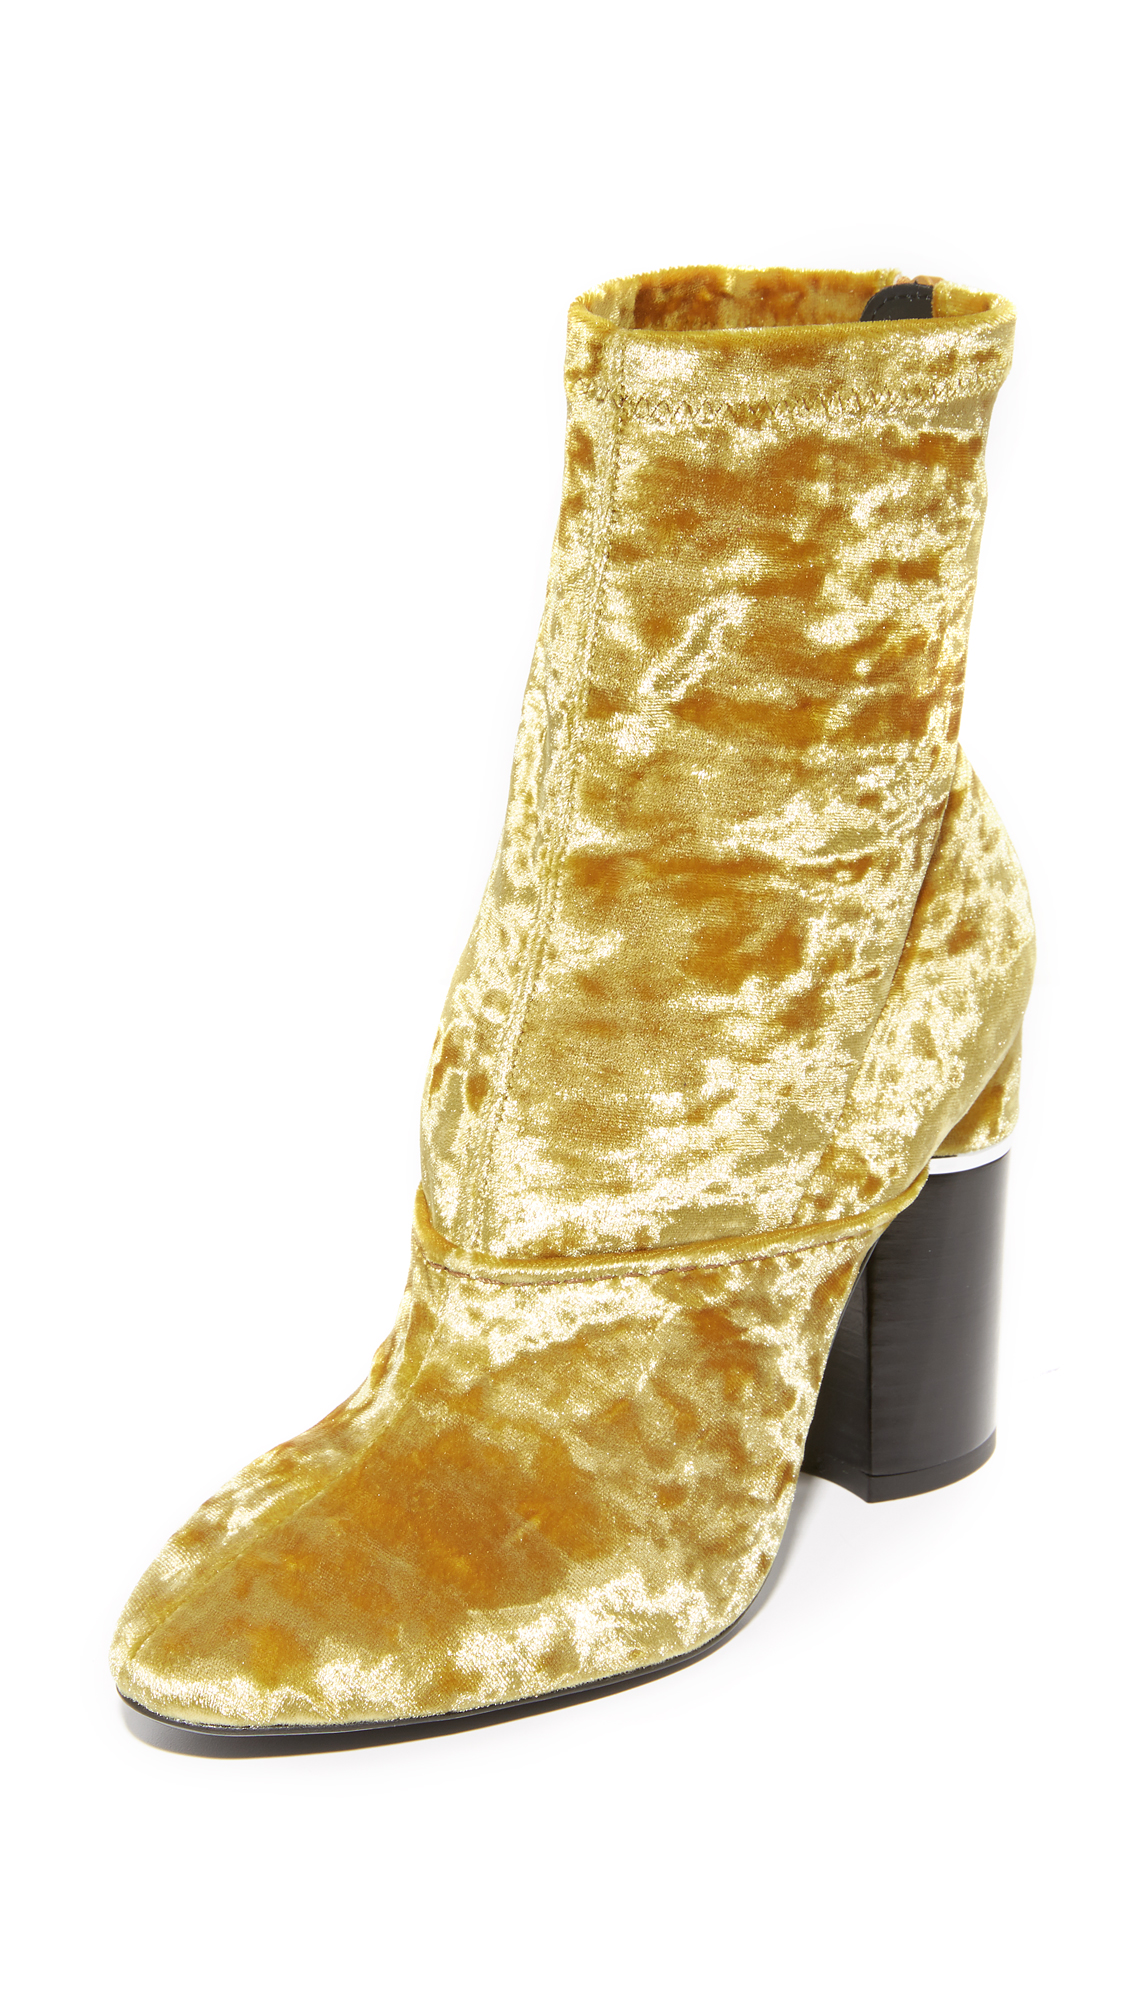 3.1 Phillip Lim Kyoto Booties - Gold